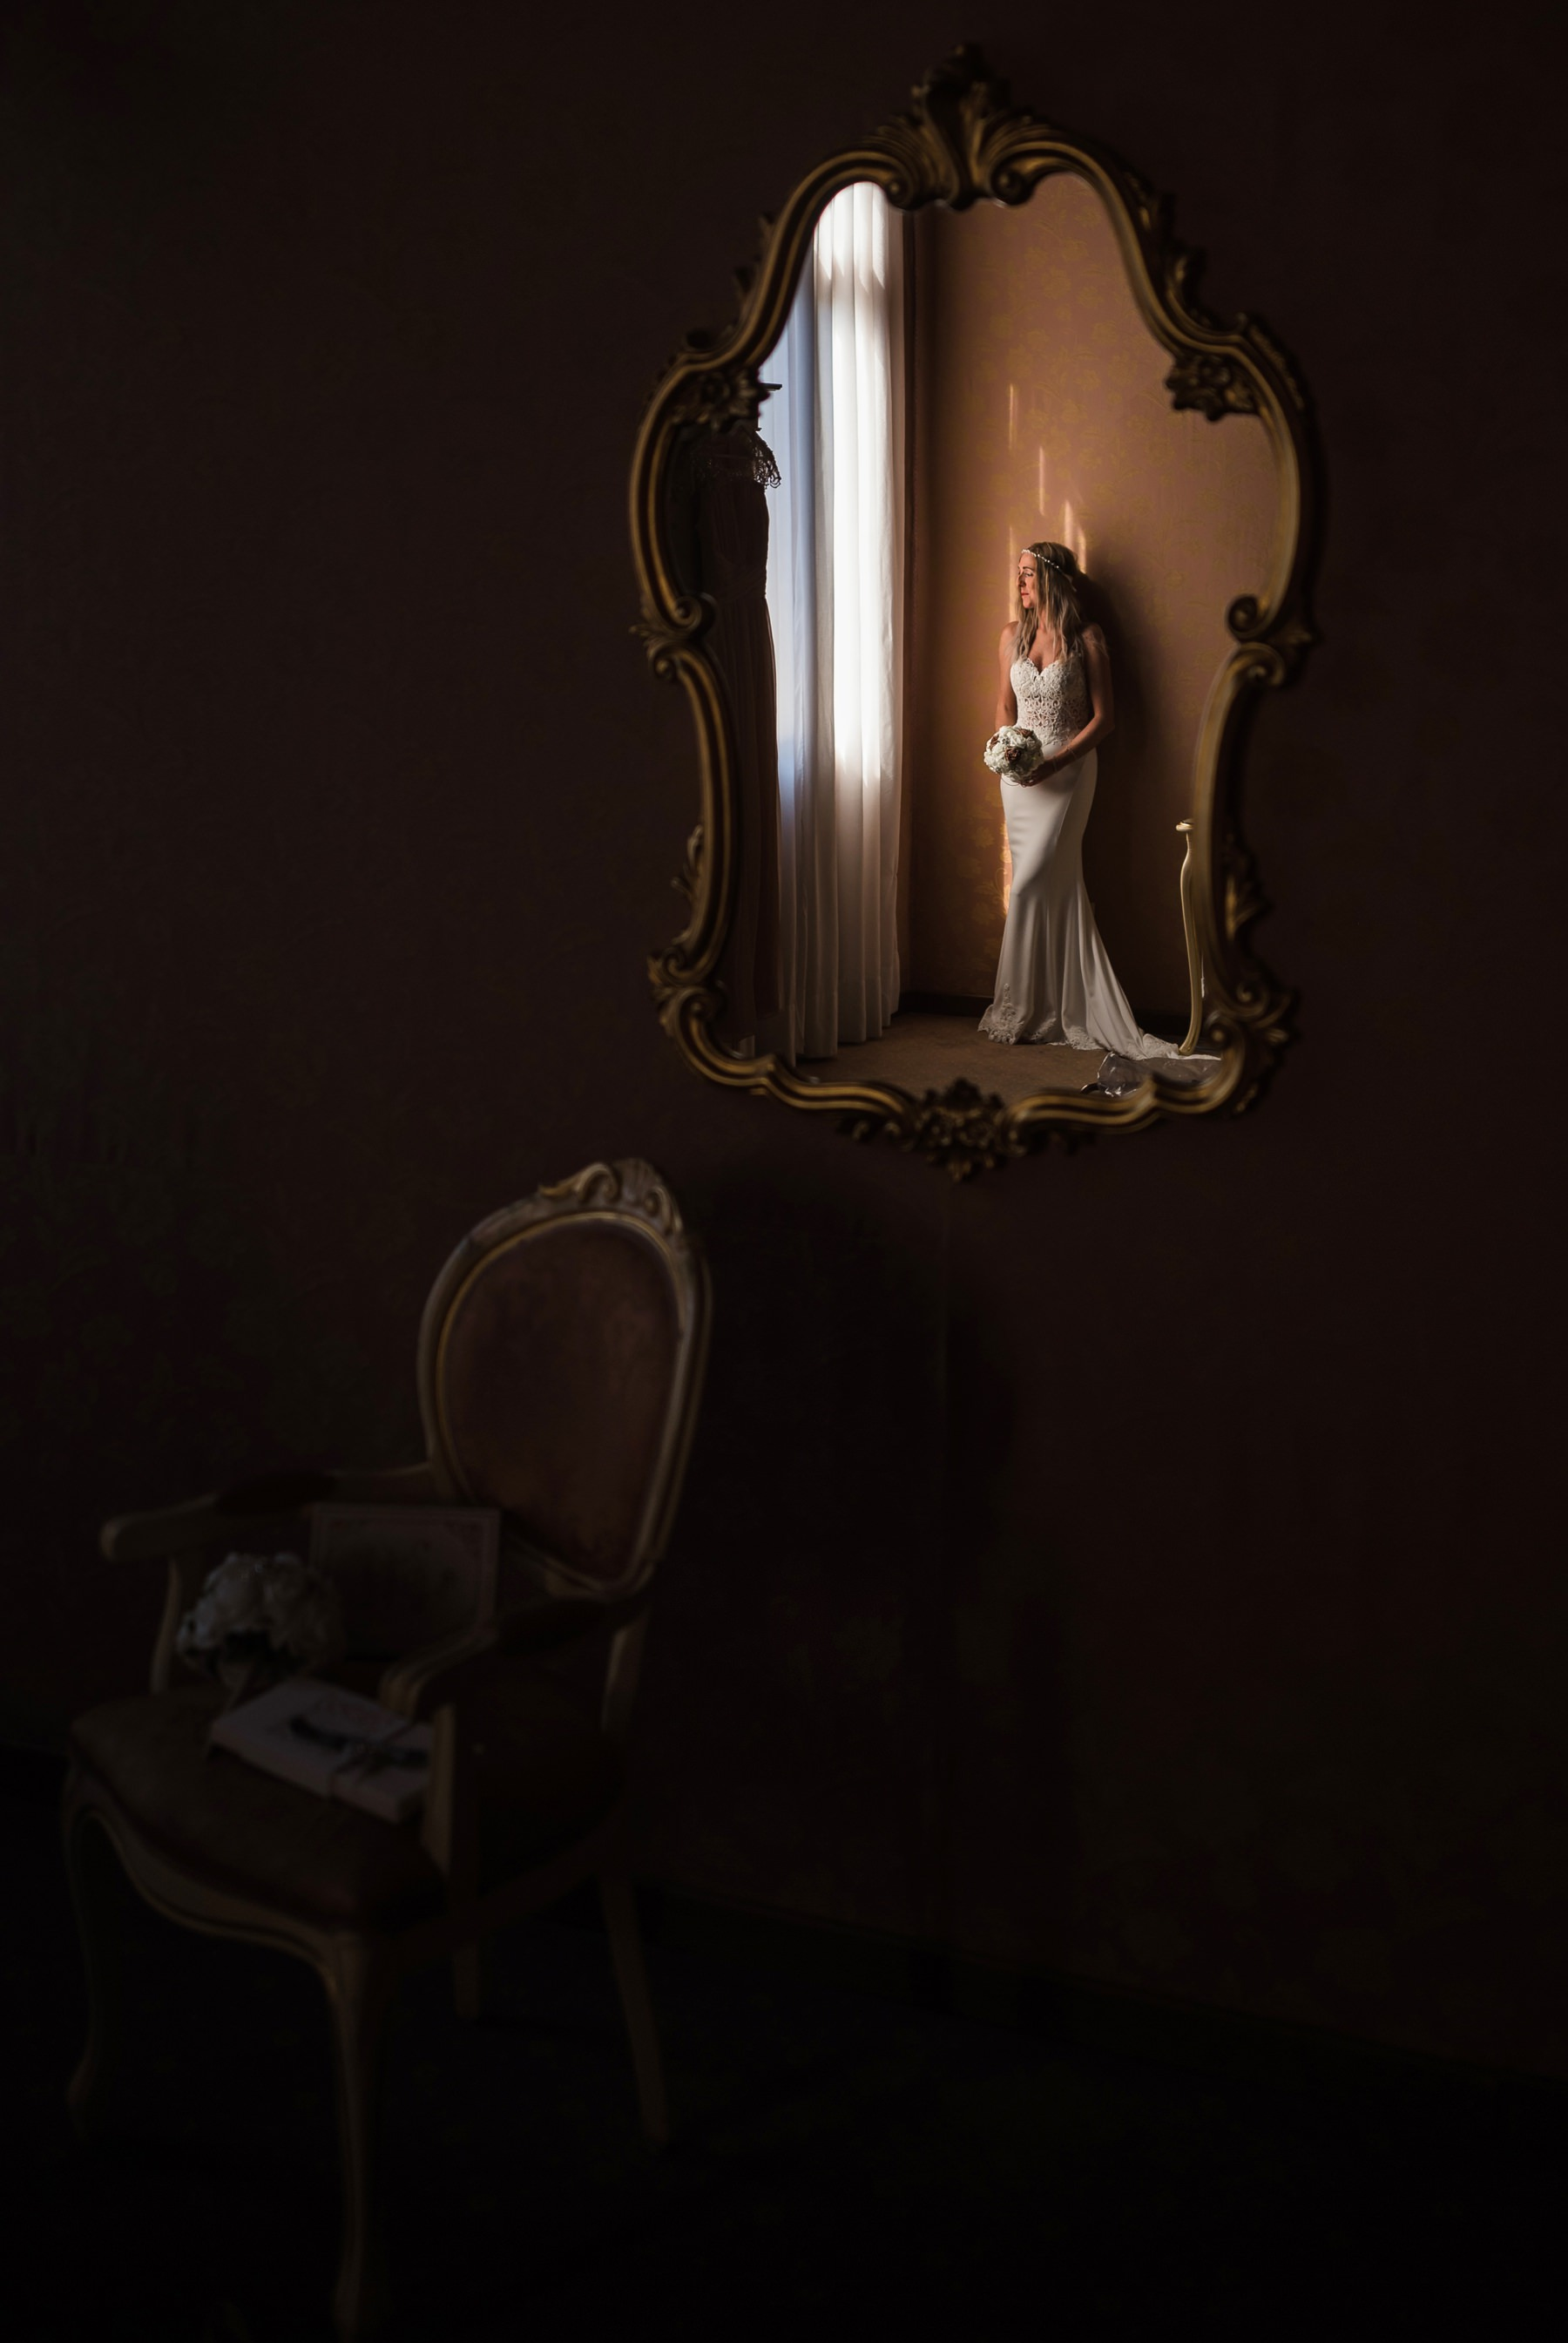 Palazzo Cavalli Venice bride holding flowers reflection in the mirror